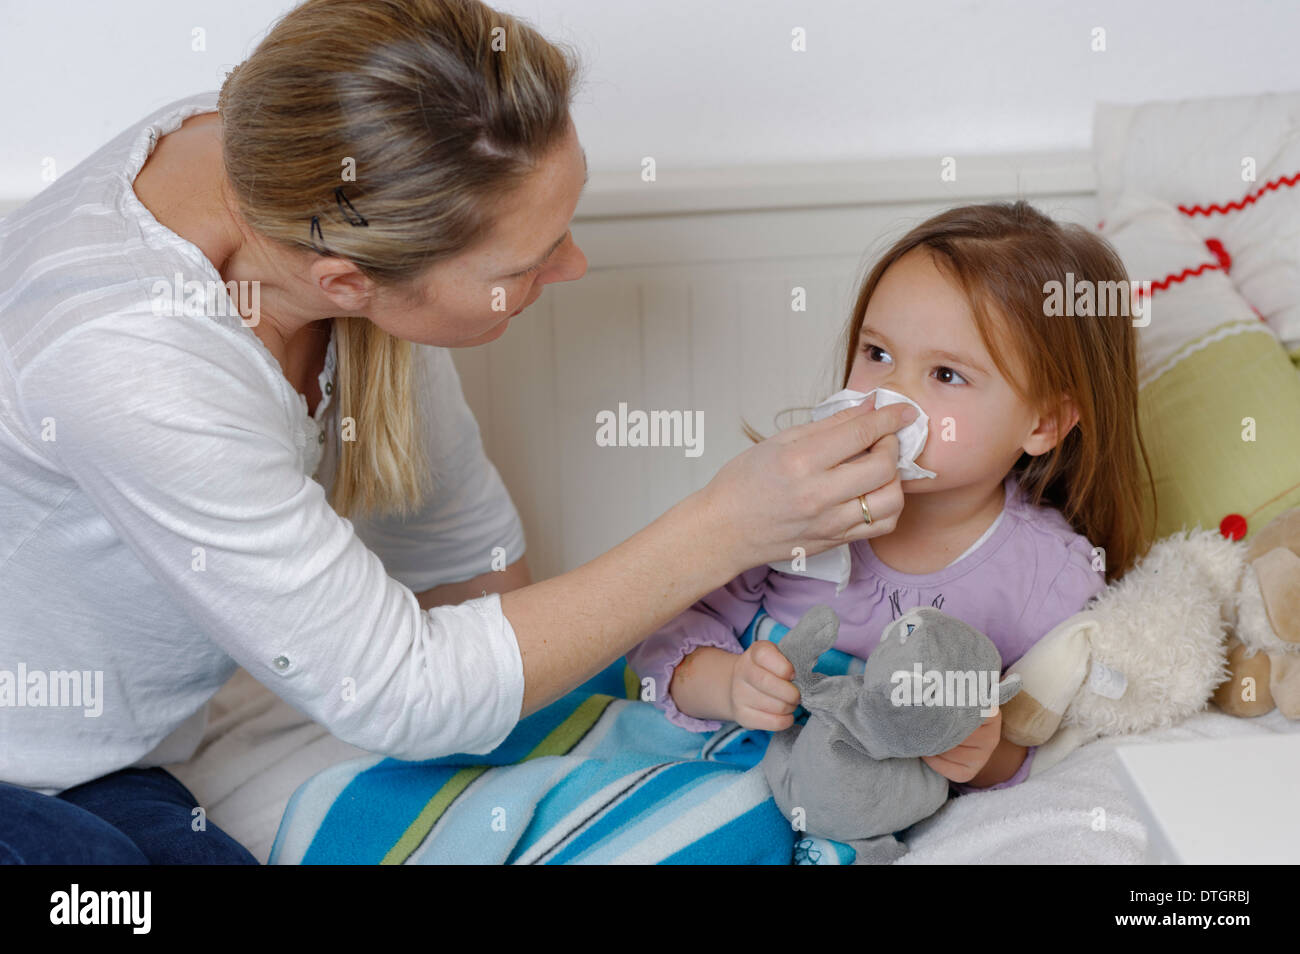 Mother taking care of her sick daughter, wiping the girl's nose, girl lying in bed - Stock Image